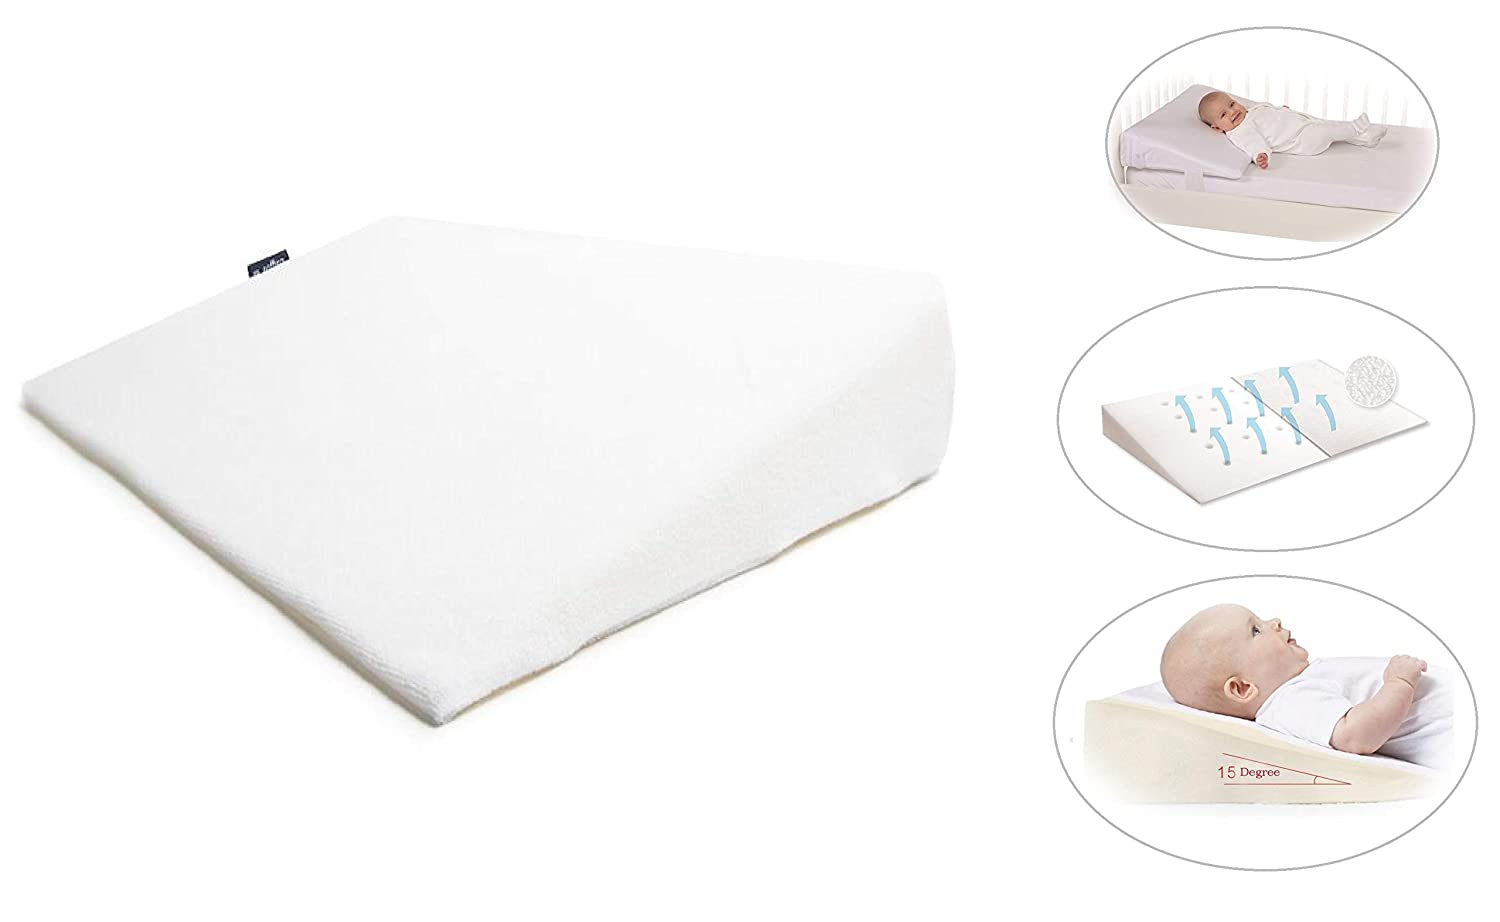 Baby Sleep Pillow Safety Anti Reflux and Colic Congestion Wedge Foam Flat Wedge Universal Bassinet Pram Moses Basket Stroller Crib Cot Bed White Large